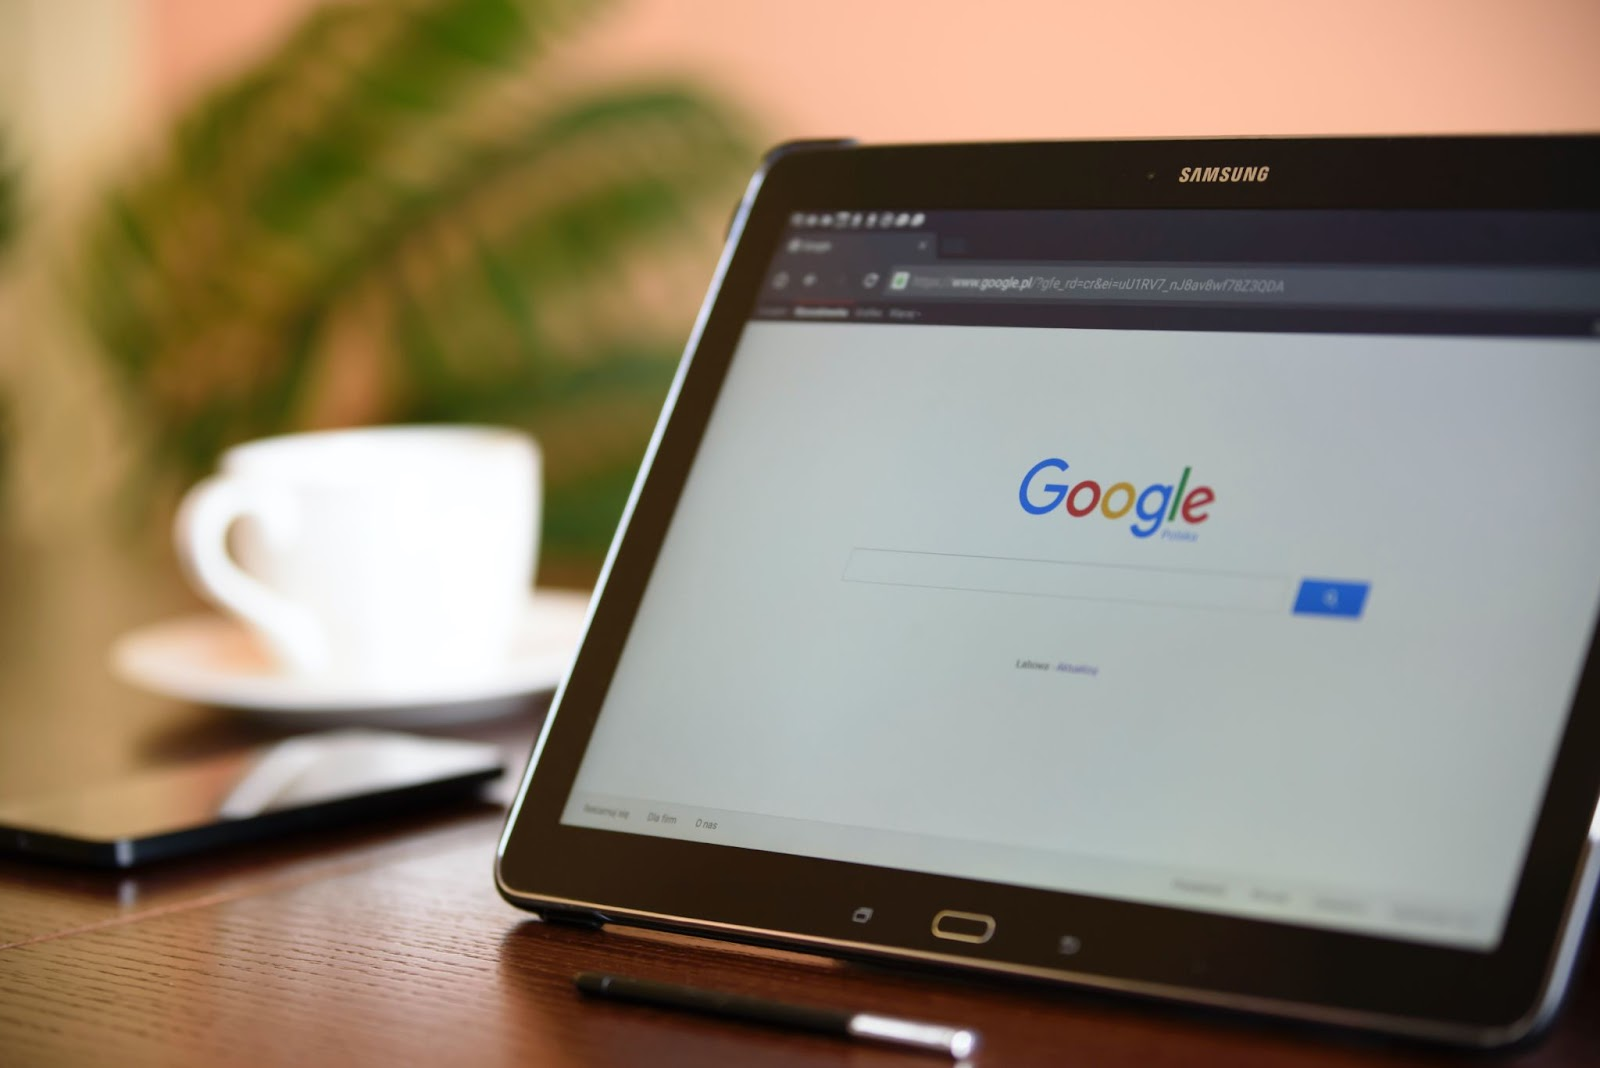 Google search engine used to get more flood damage leads